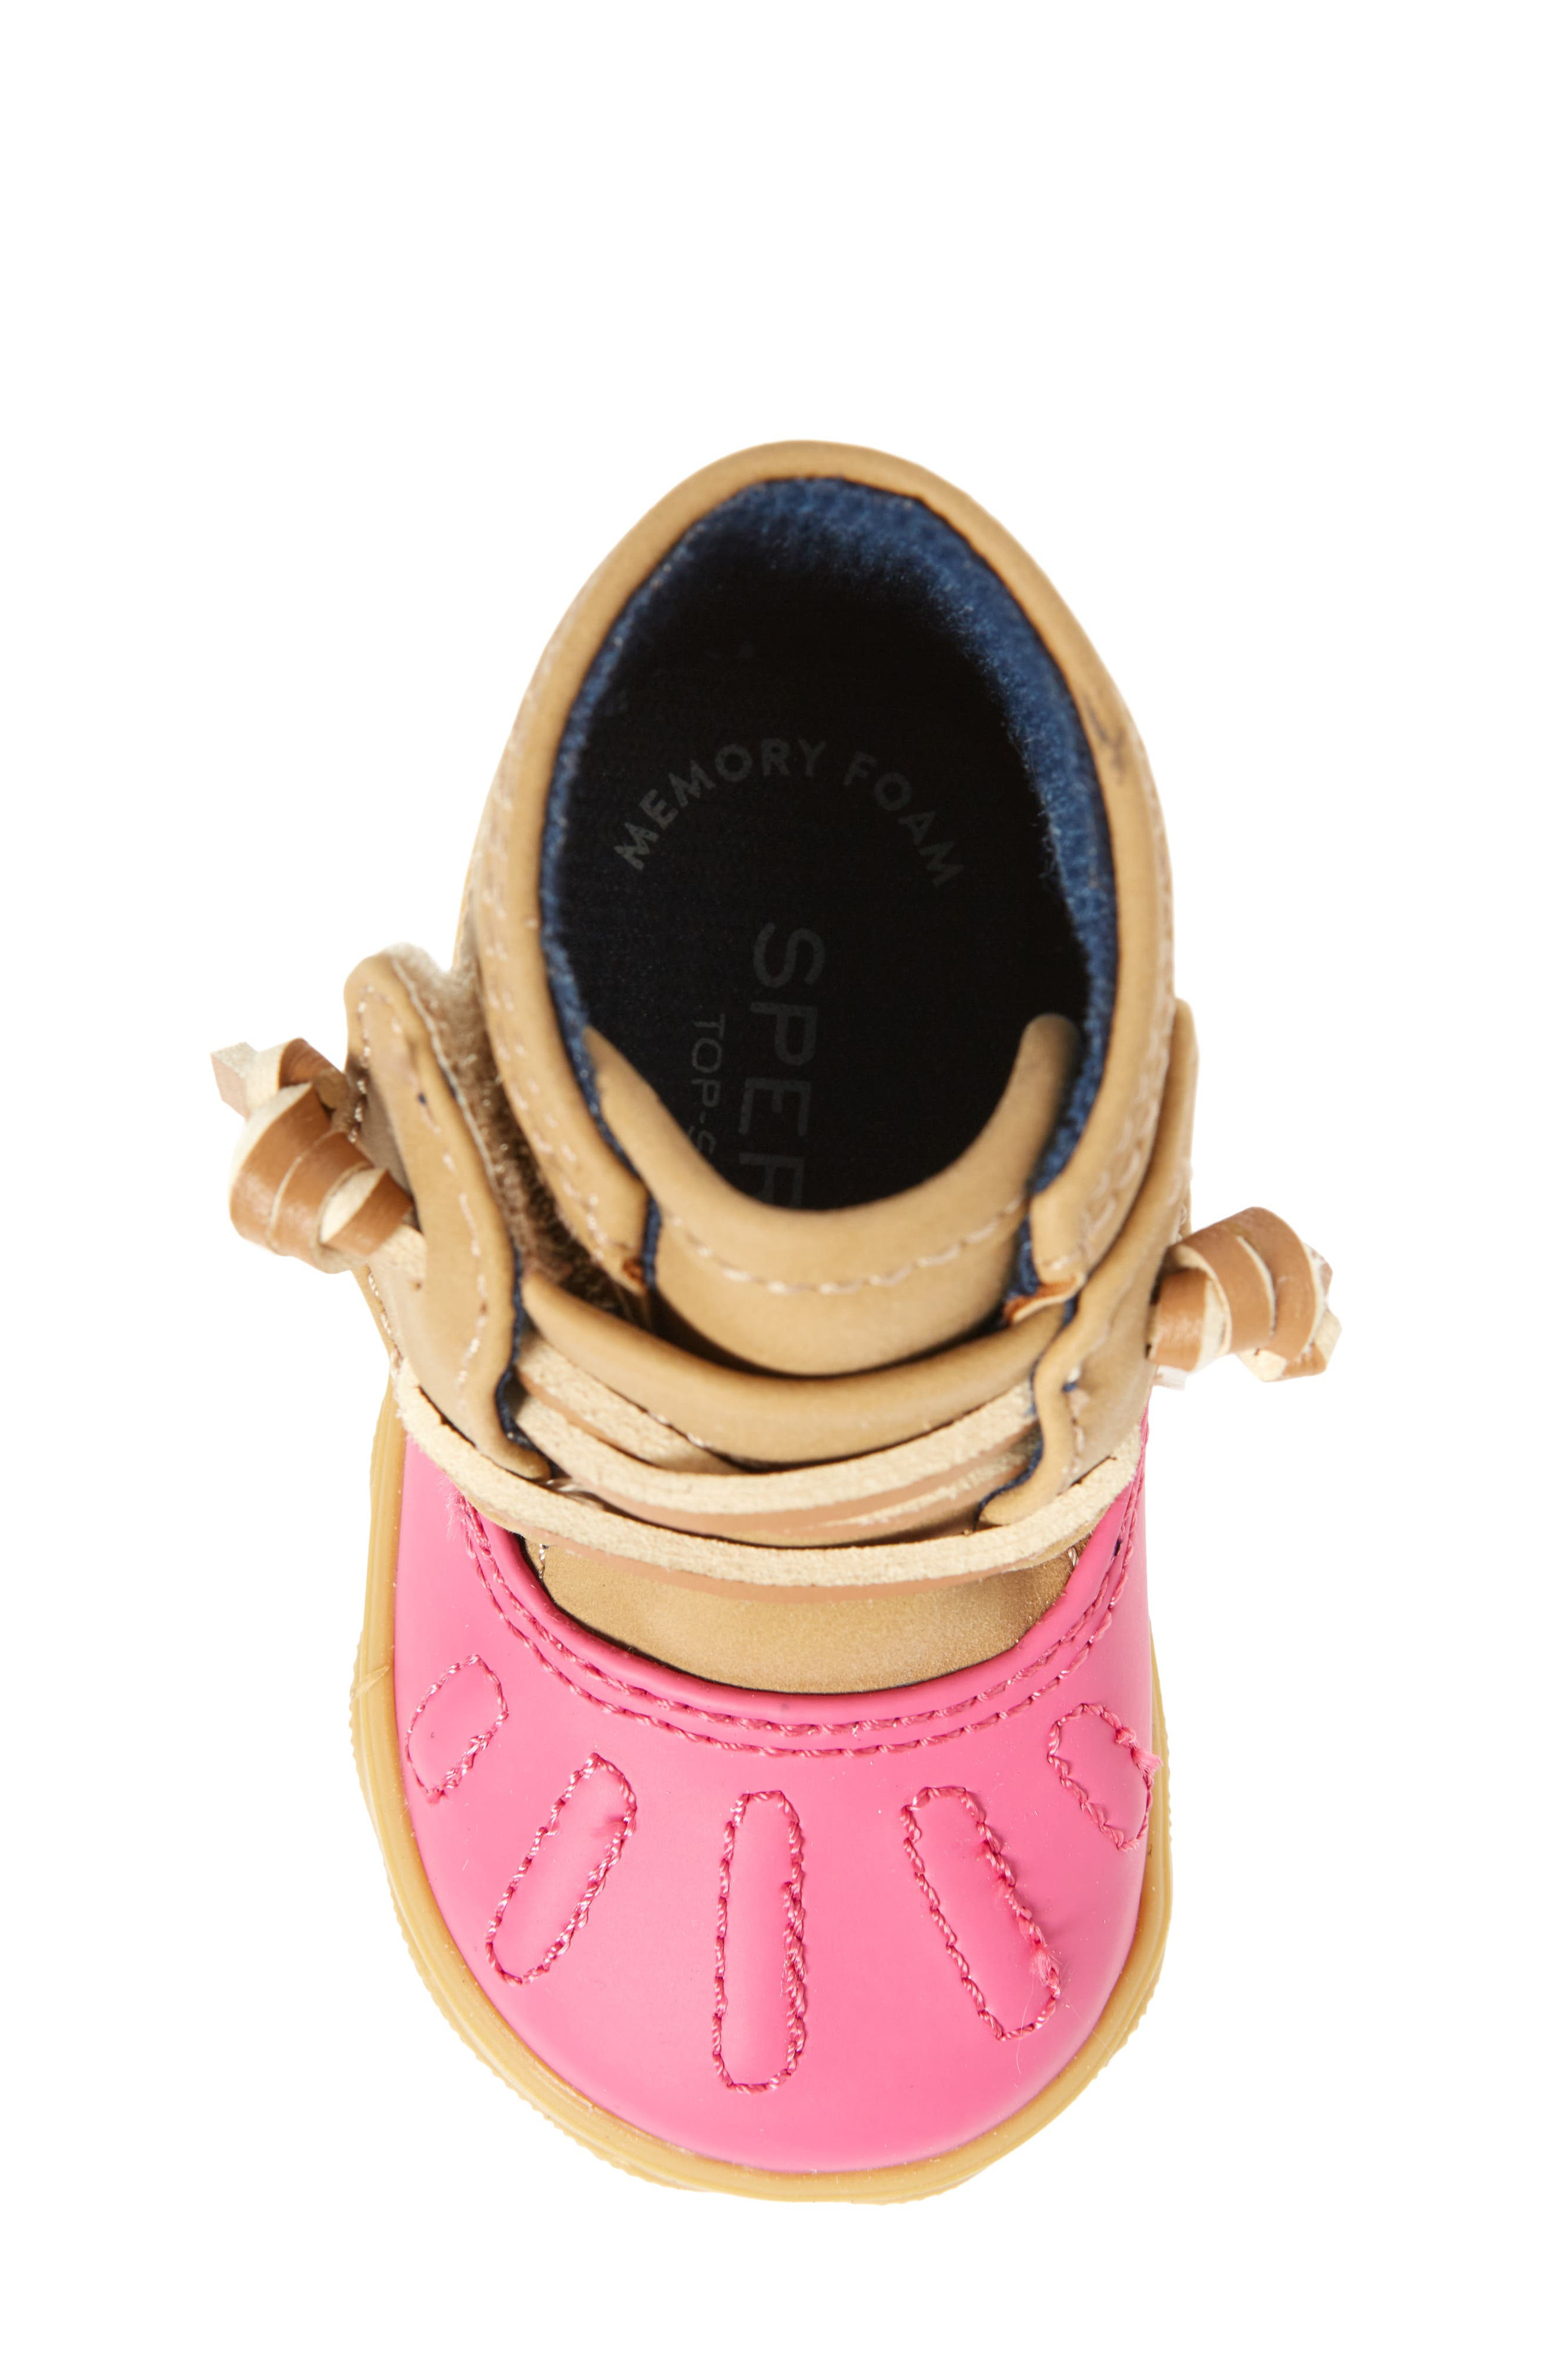 Sperry Icestorm Crib Duck Bootie,                             Alternate thumbnail 5, color,                             650